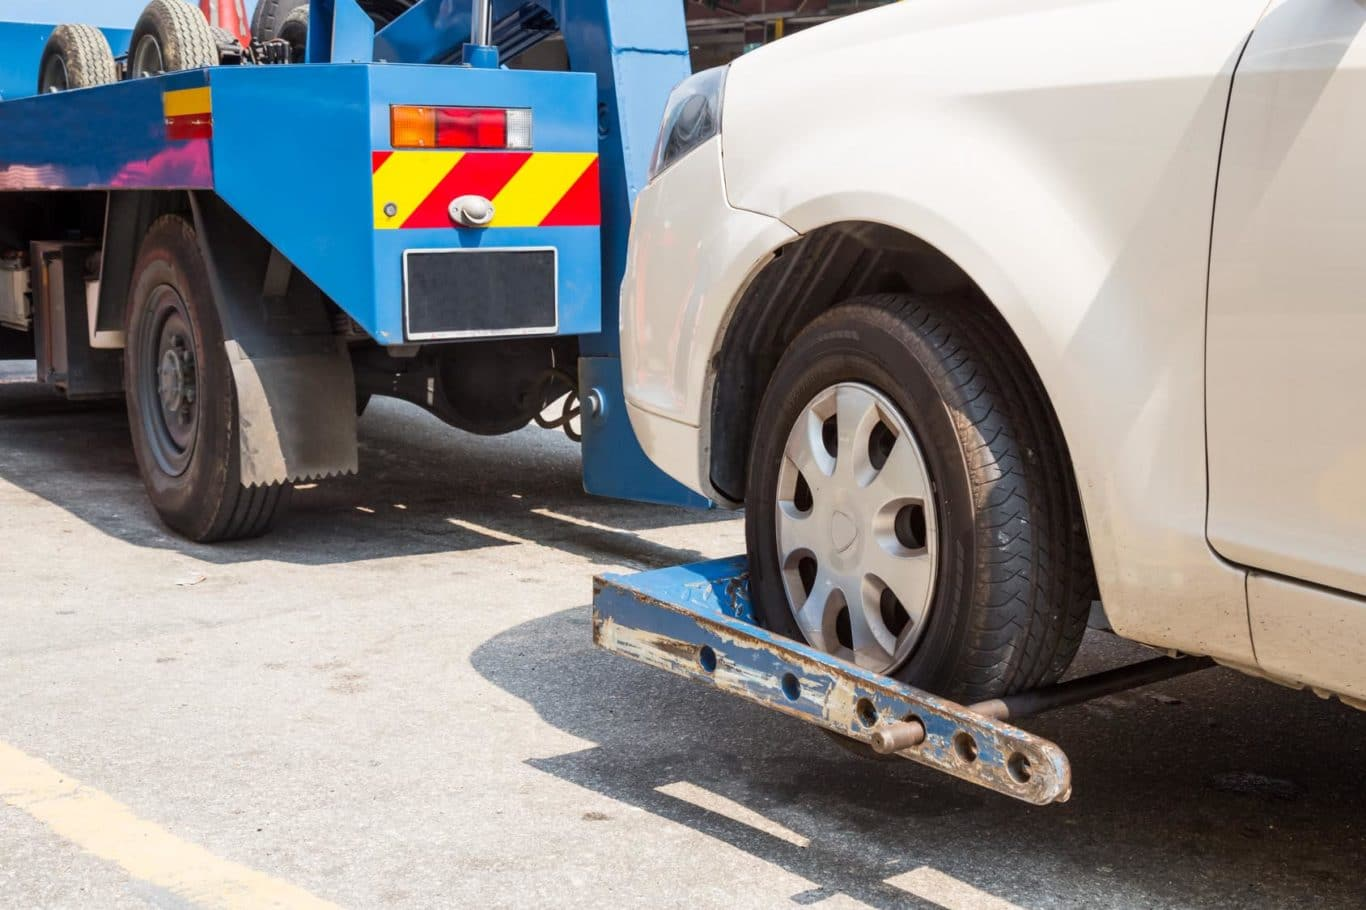 Carlingford, County Louth expert Tow Truck services